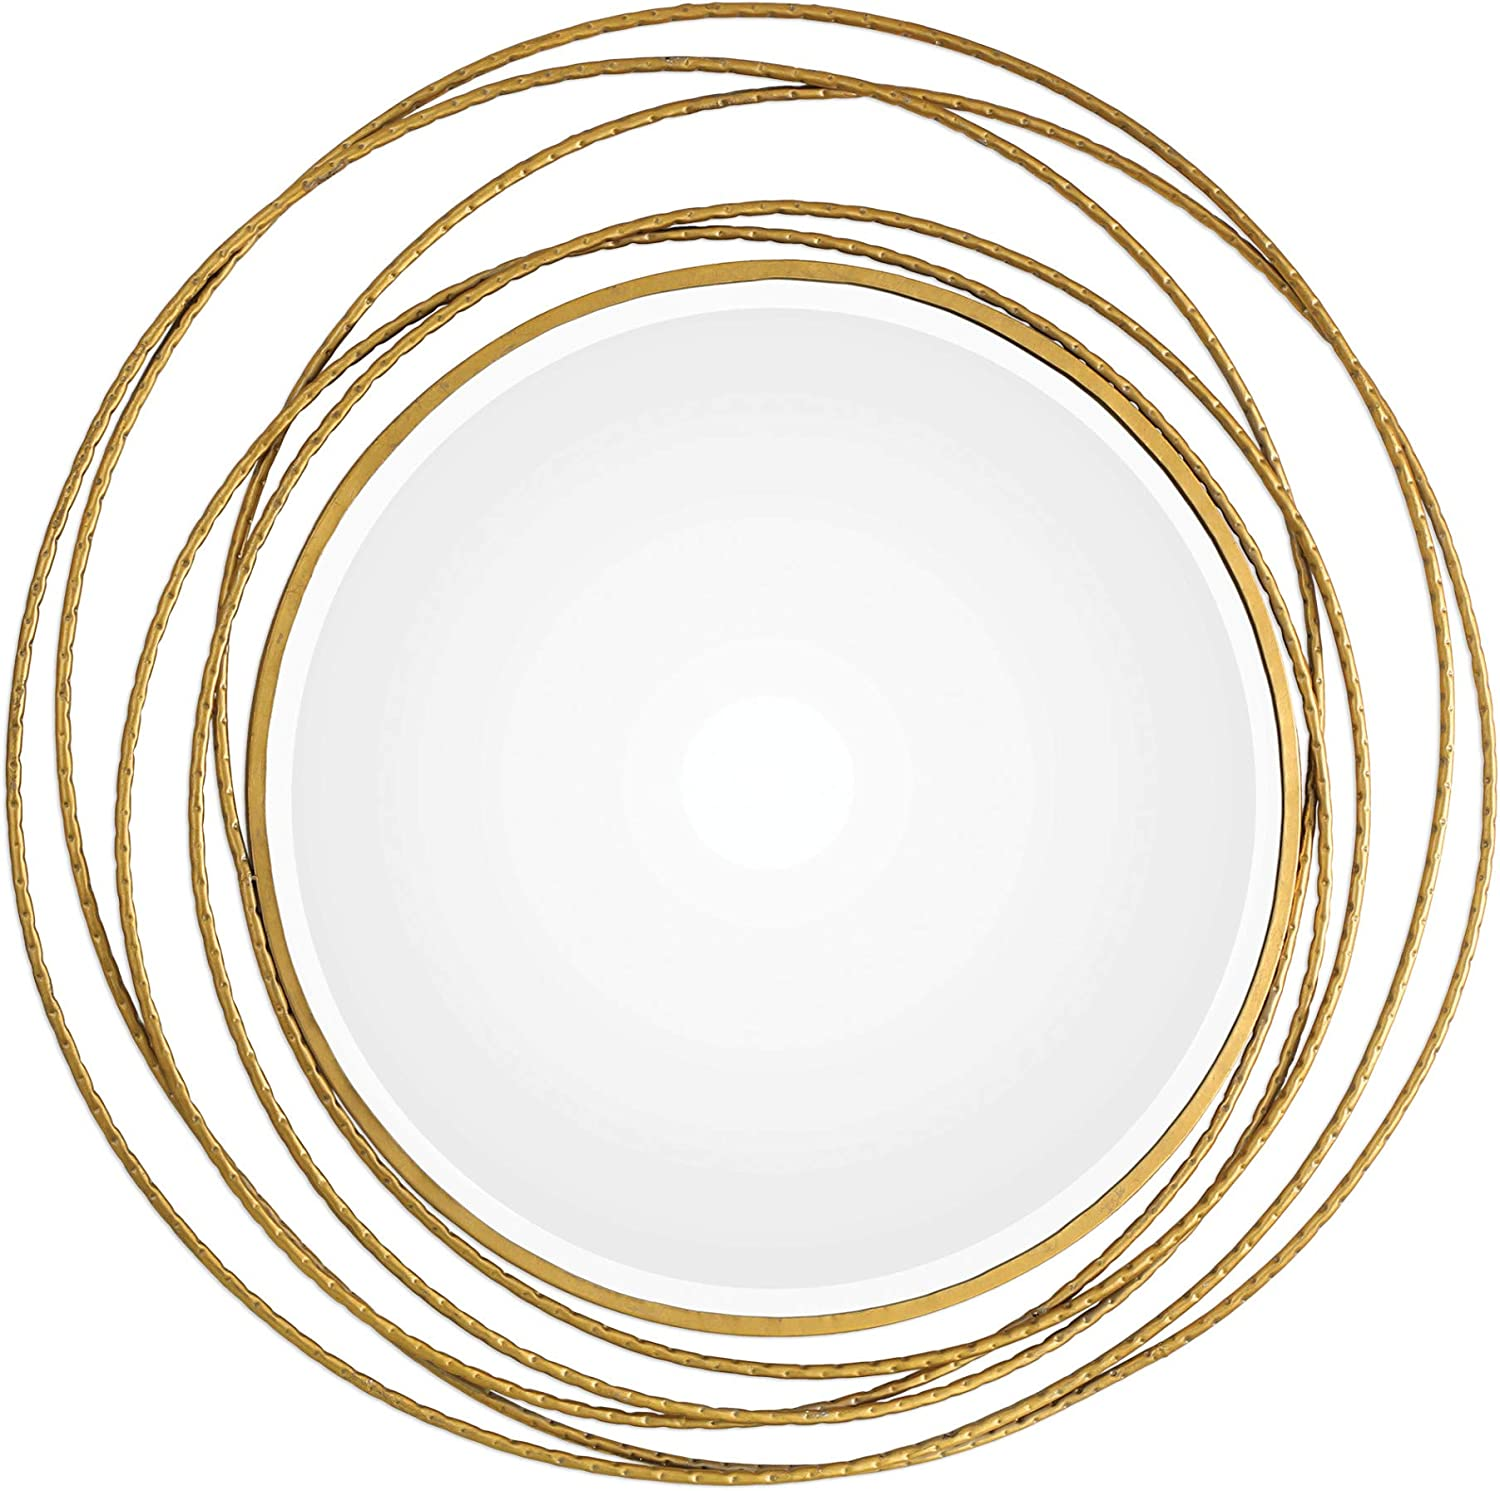 Amazon Com Uttermost 09348 Whirlwind 39 37 Round Mirror Metallic Gold Leaf Hammered Texture Finish Home Kitchen